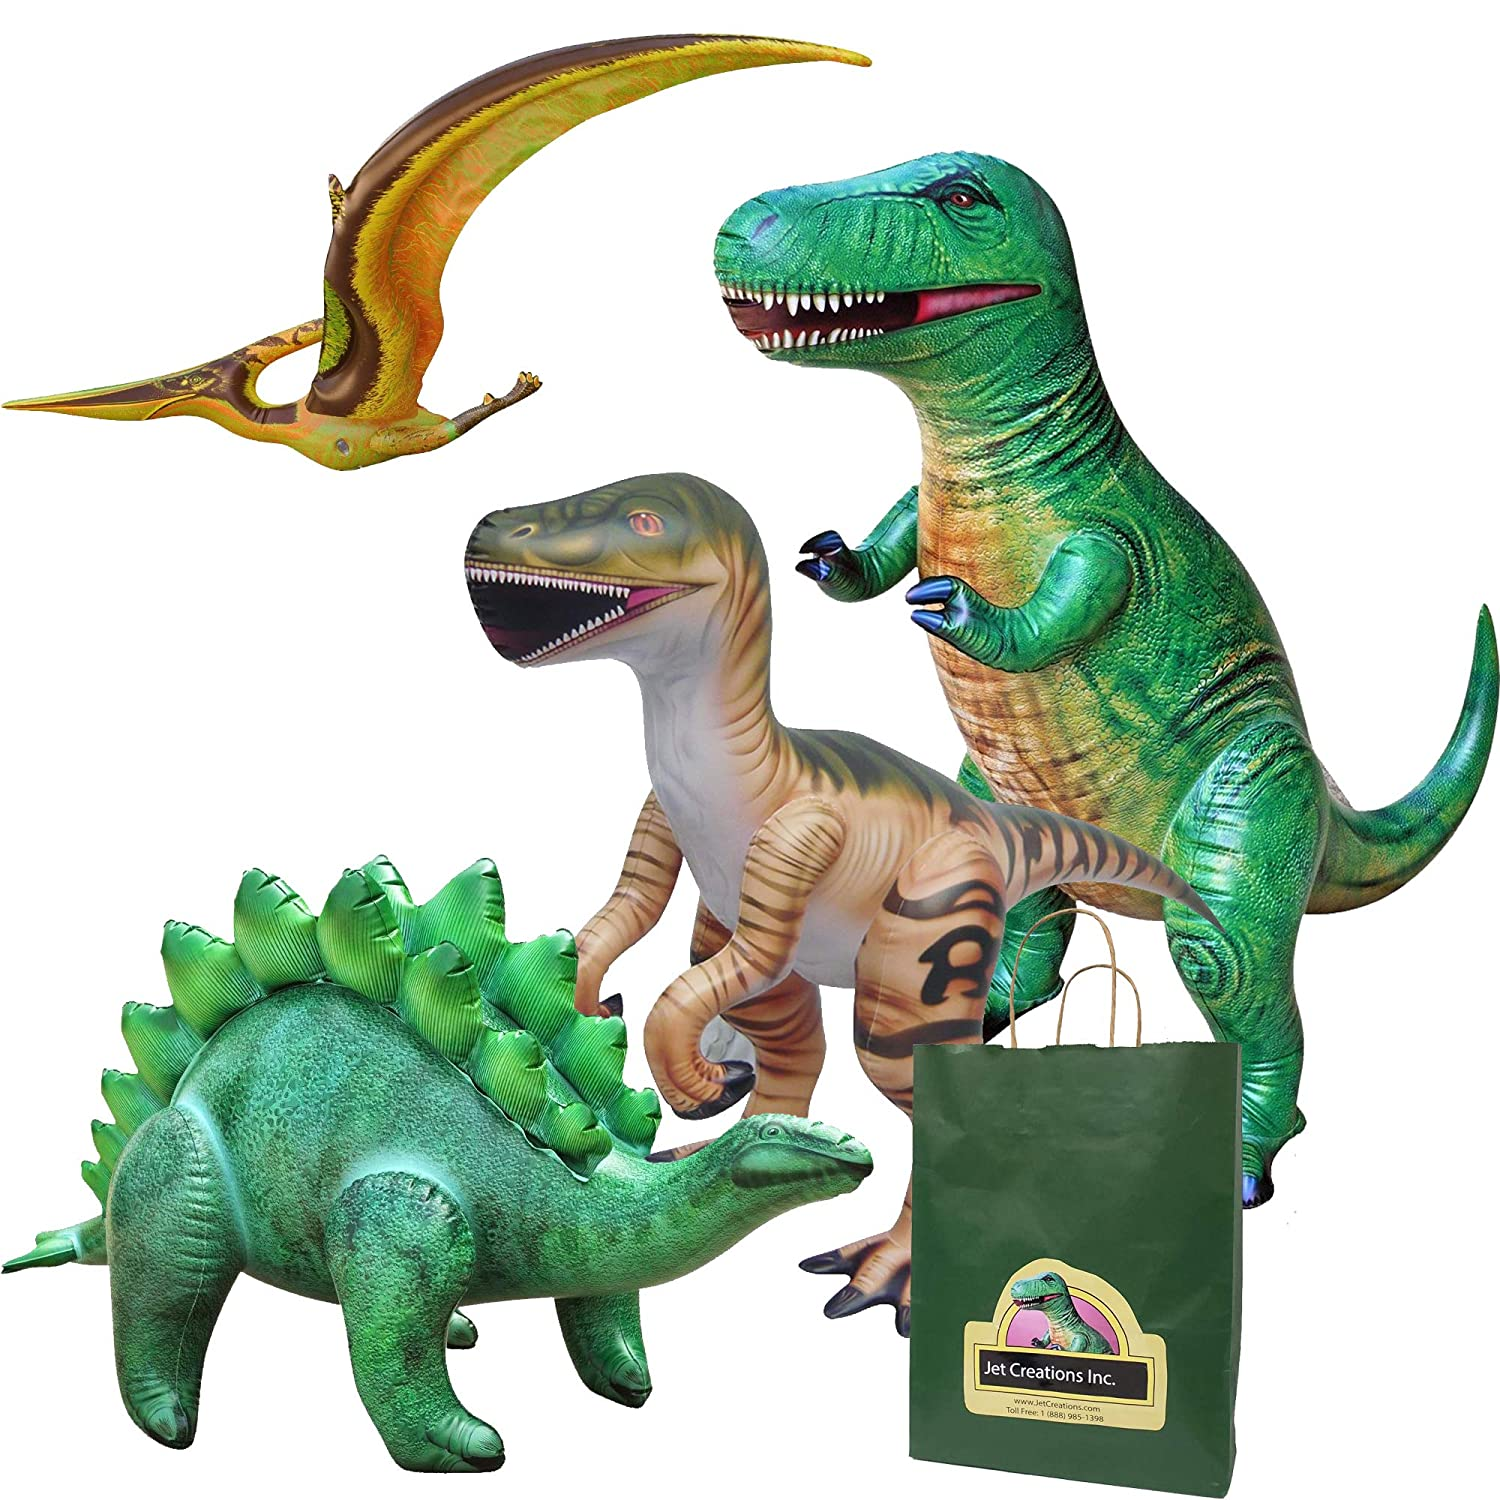 Amazon.com: Jet Creations 4-pk Dinosaurios inflables Combo ...